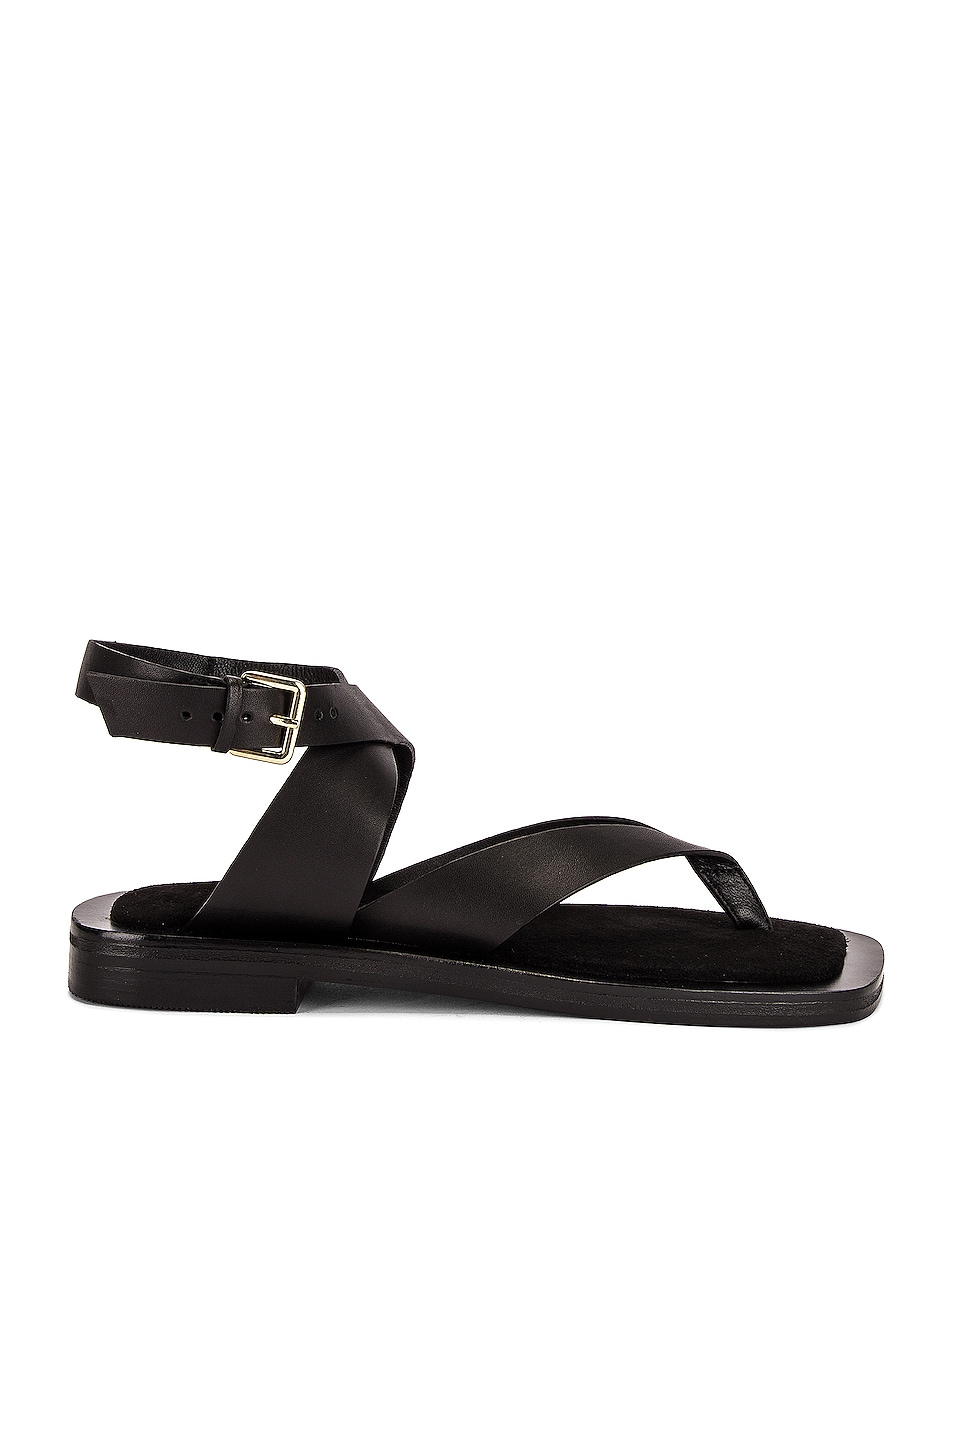 Image 1 of A.EMERY Dylan Sandal in Black